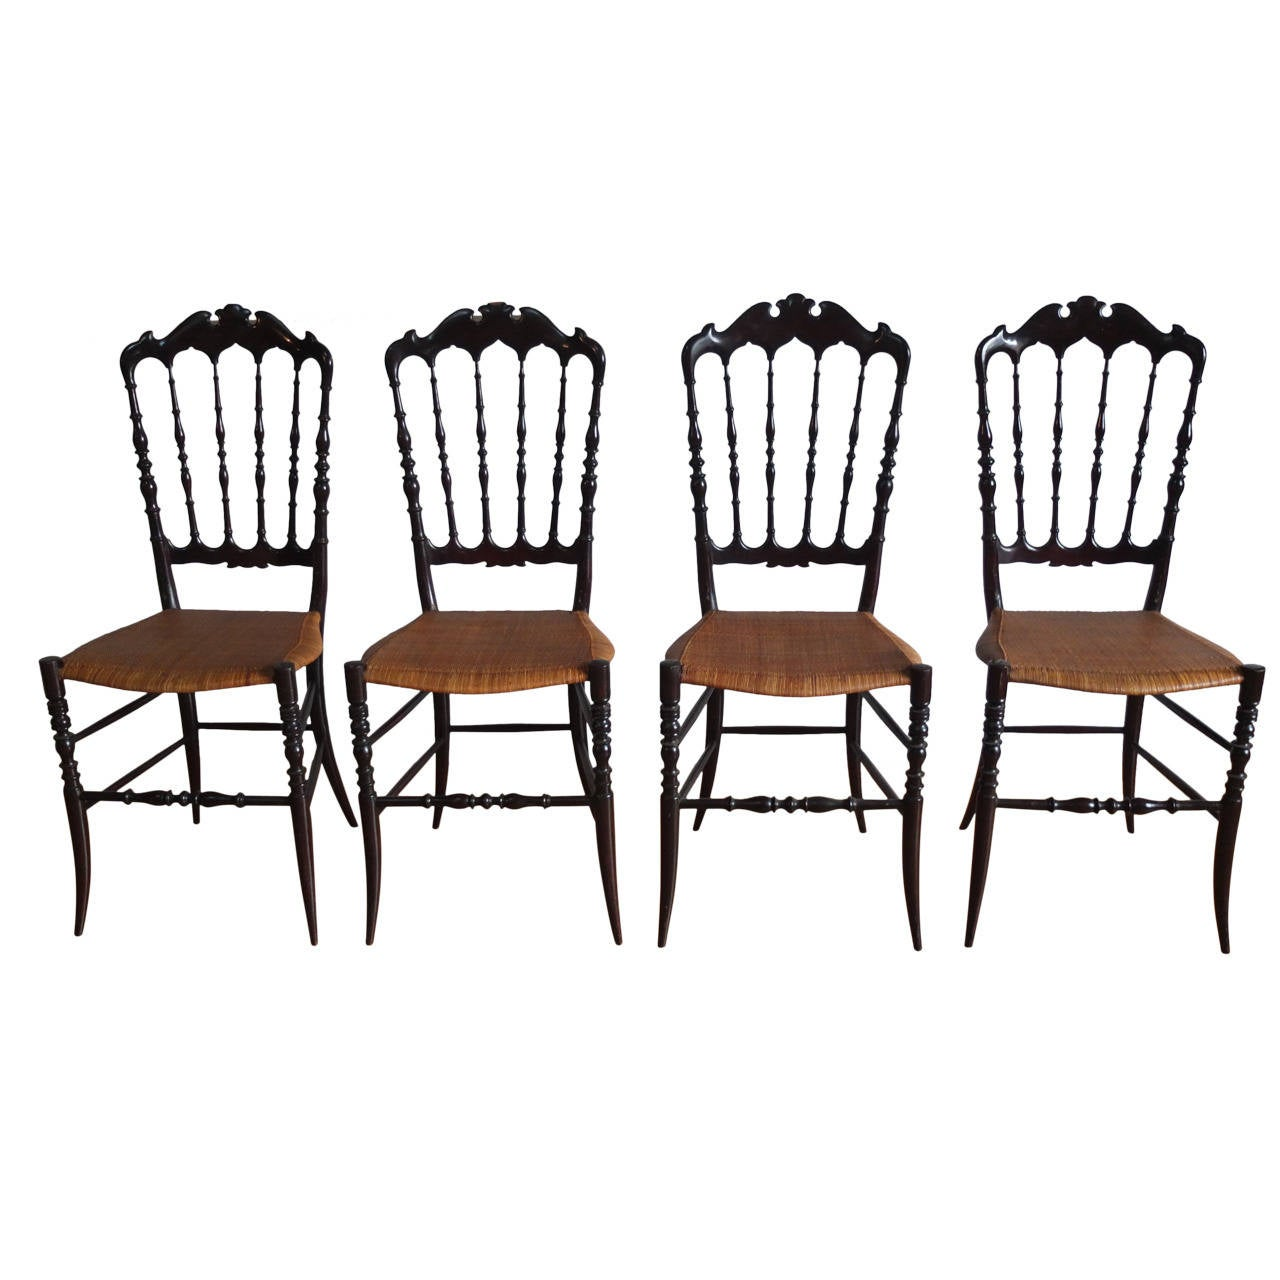 Chiavari Set Of Four Wooden Chairs 1960 At 1stdibs